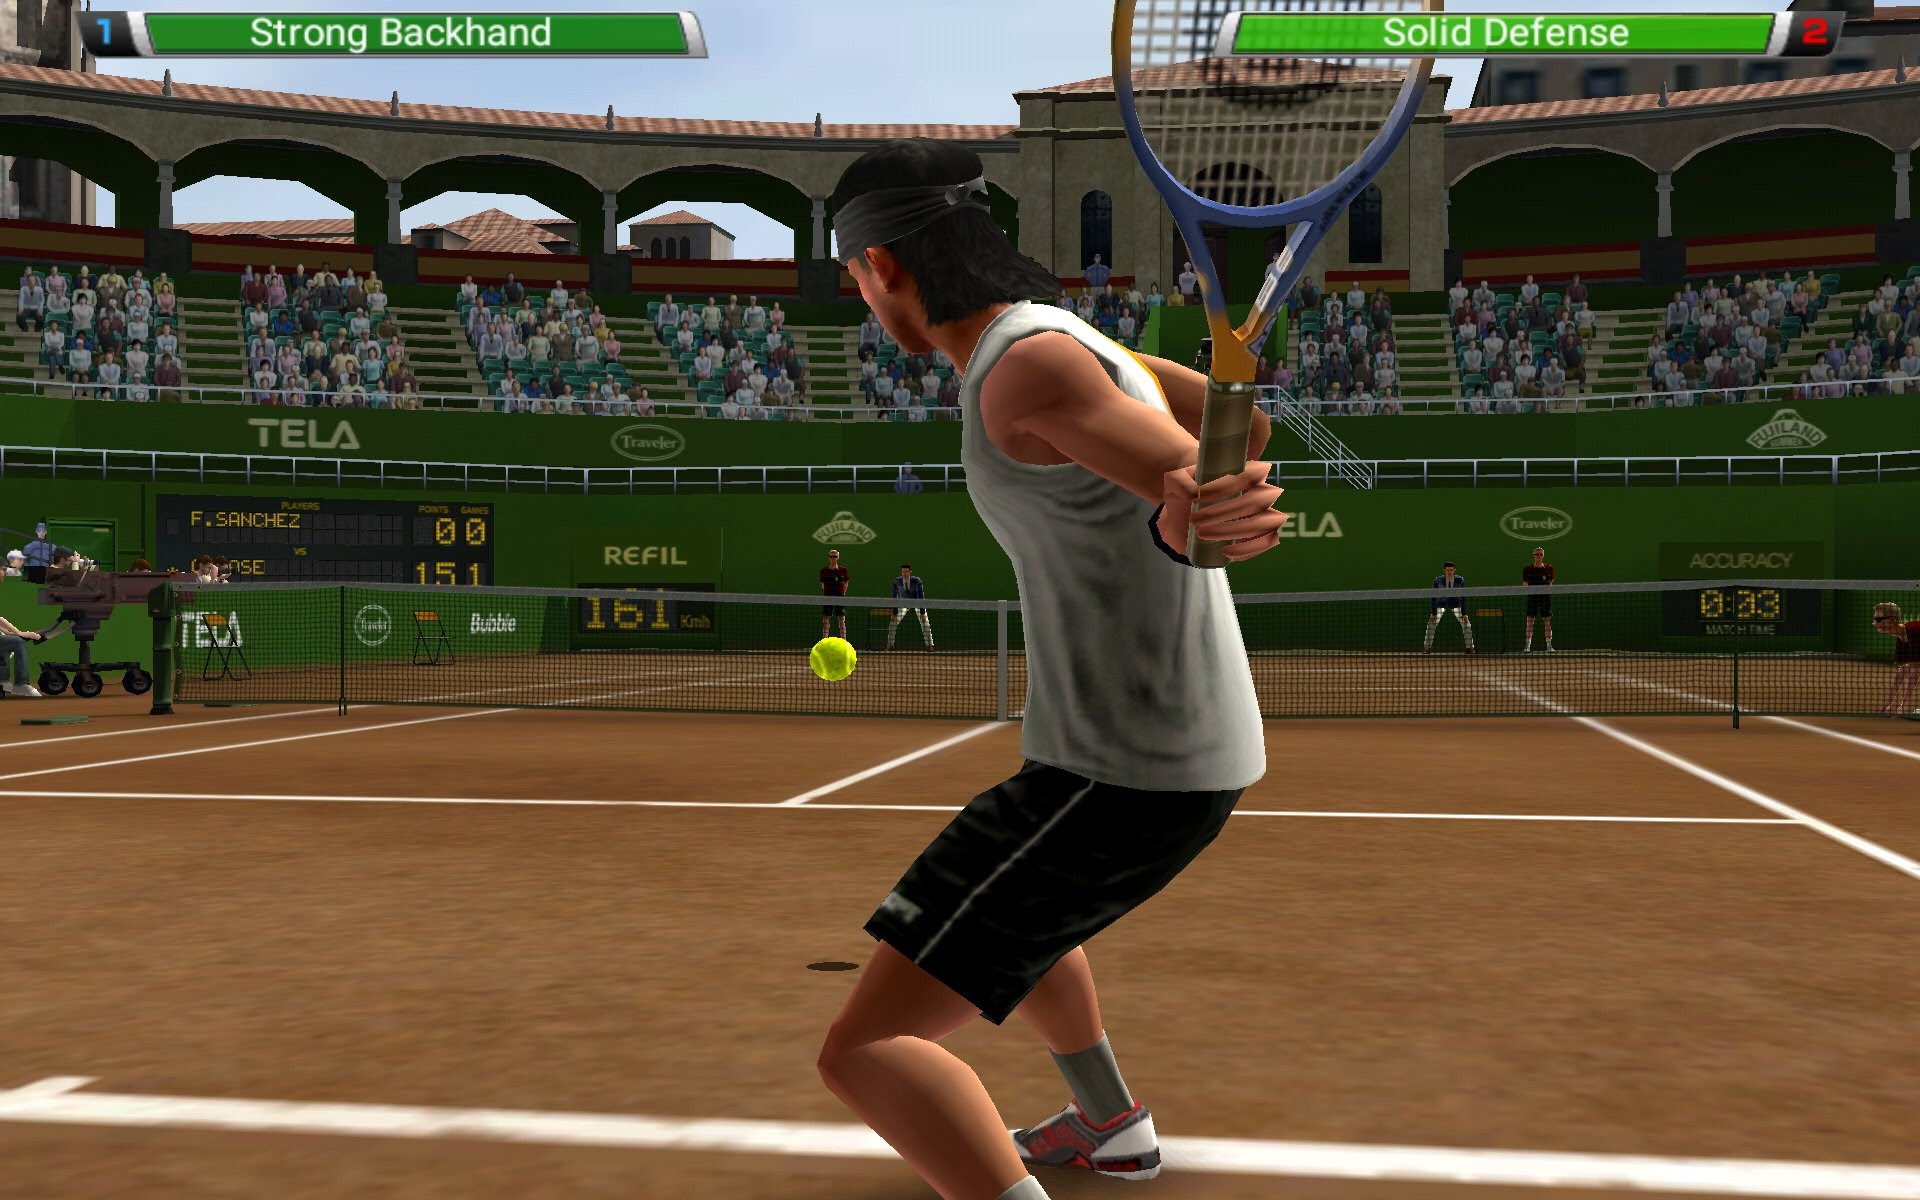 You can now play Wimbledon on your phone while sitting at Wimbledon screenshot